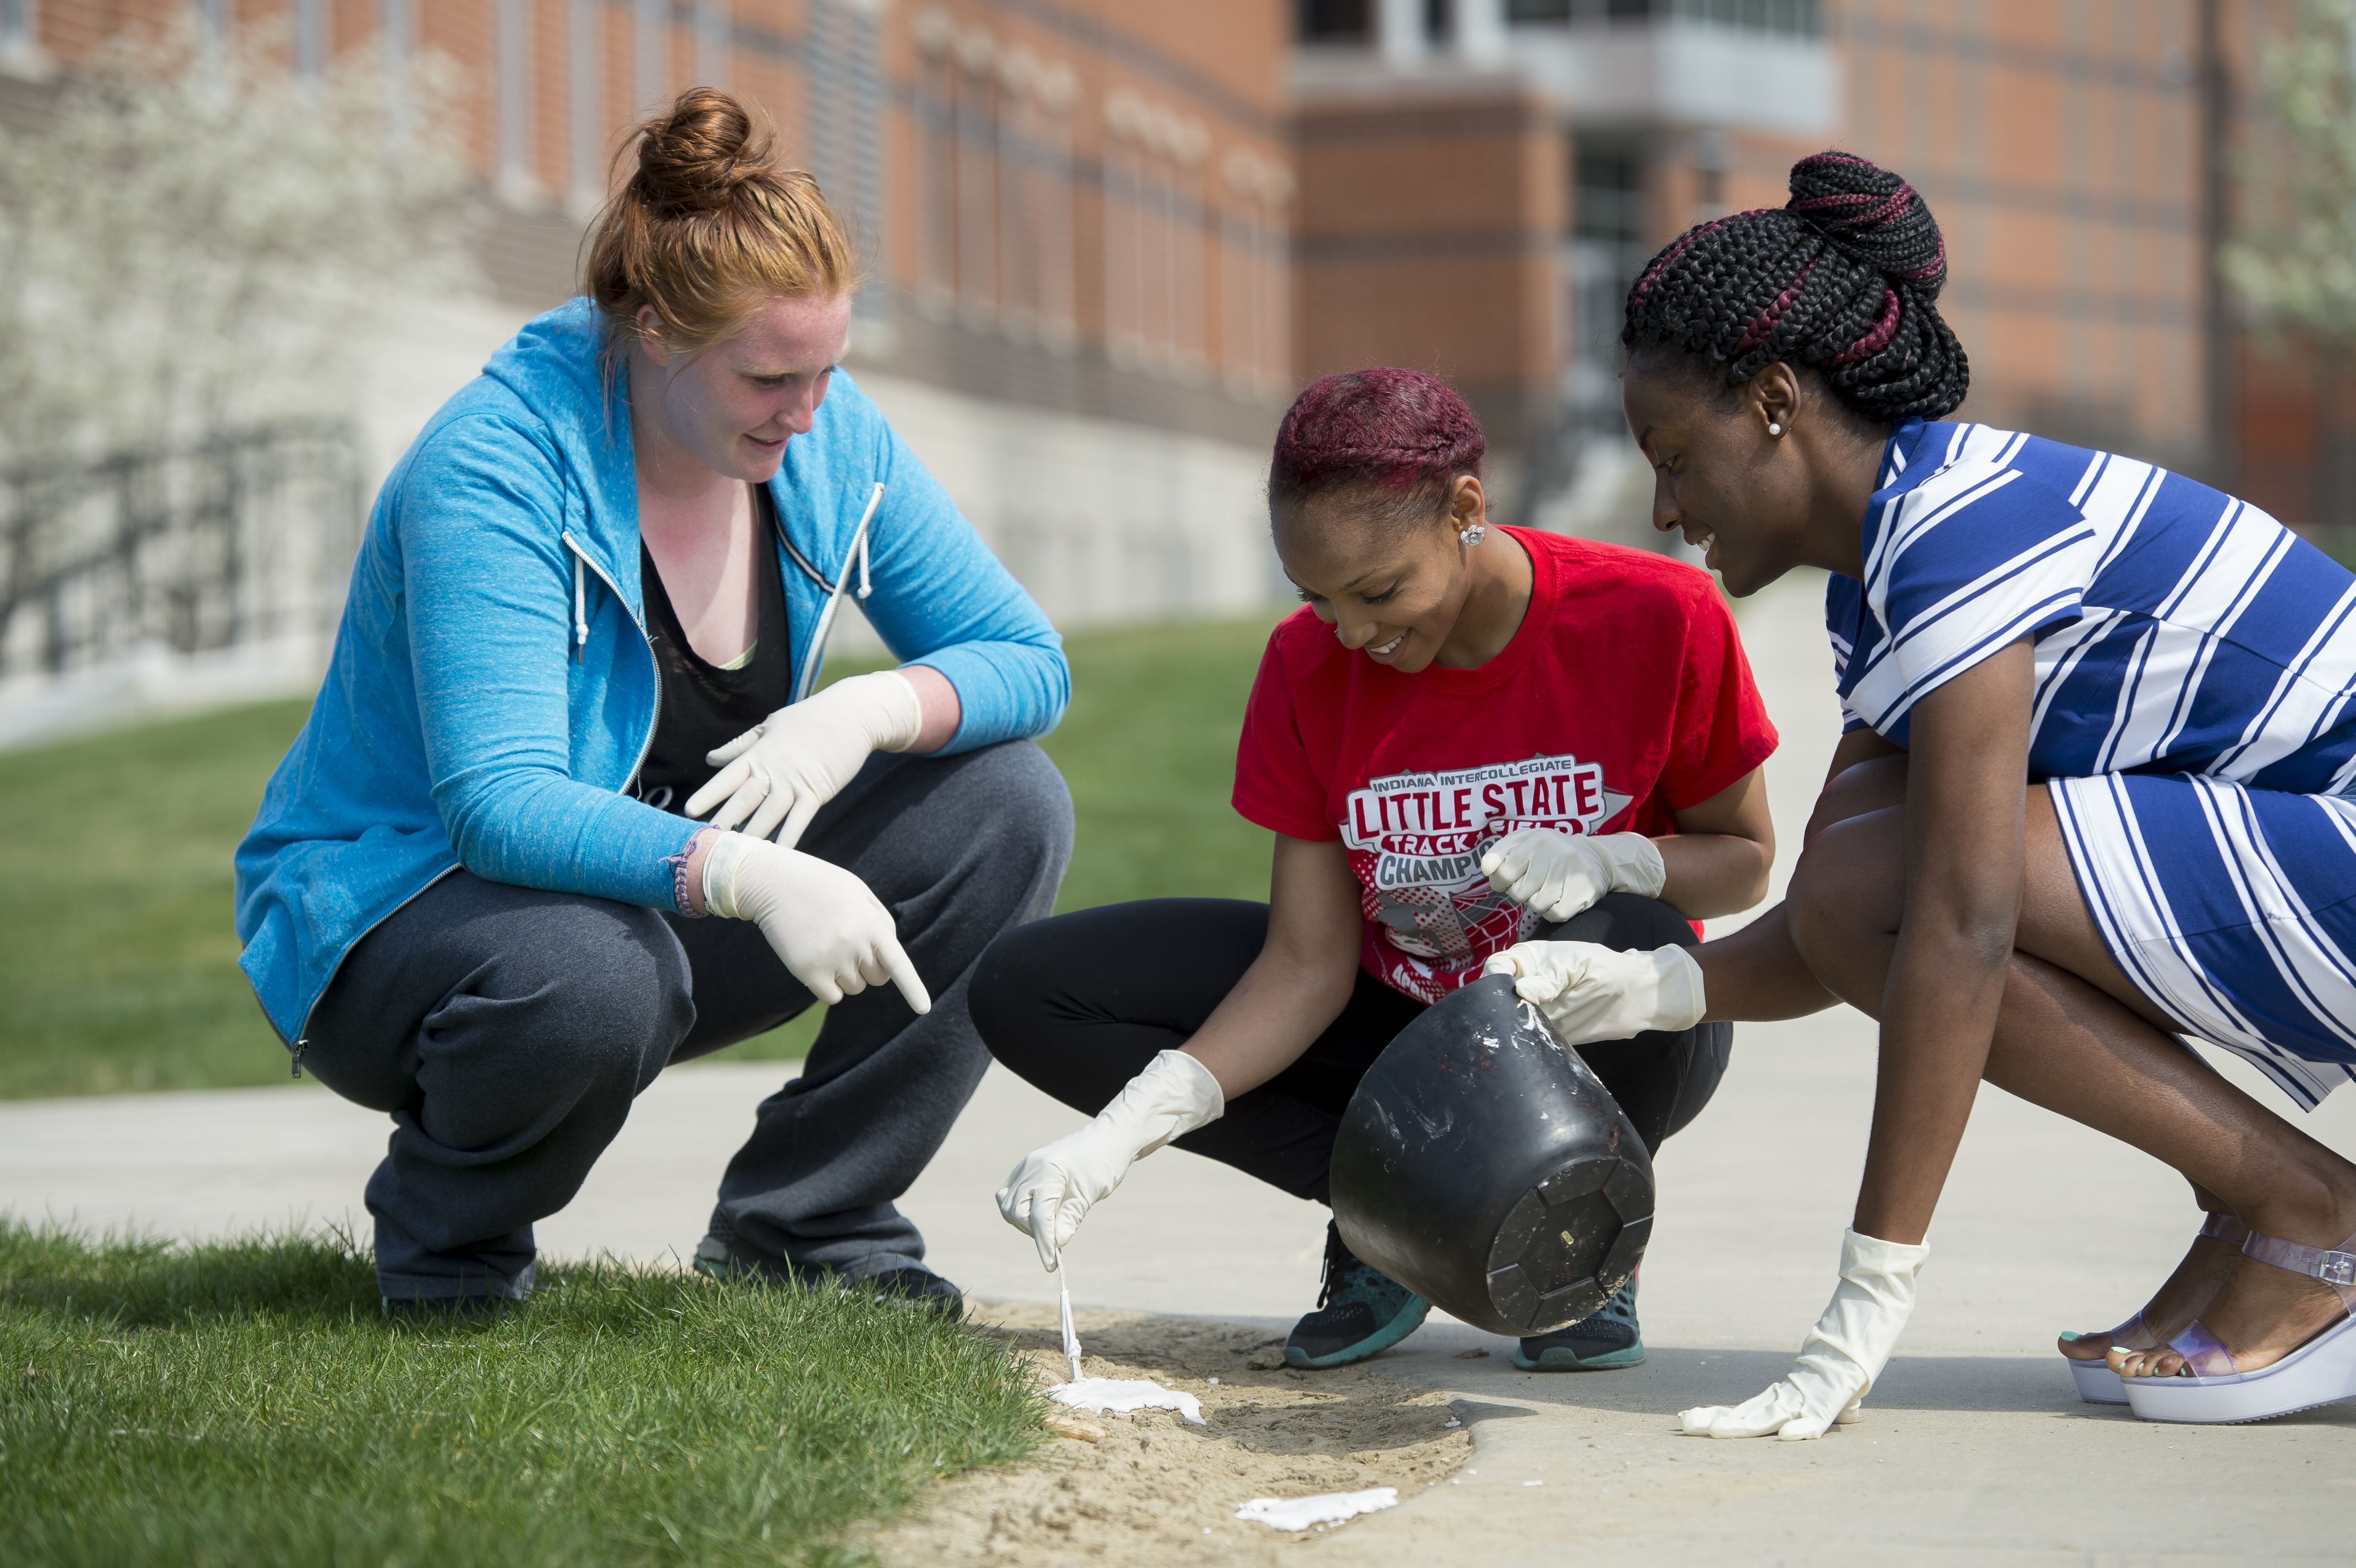 Collecting Samples For A Criminal Justice Class